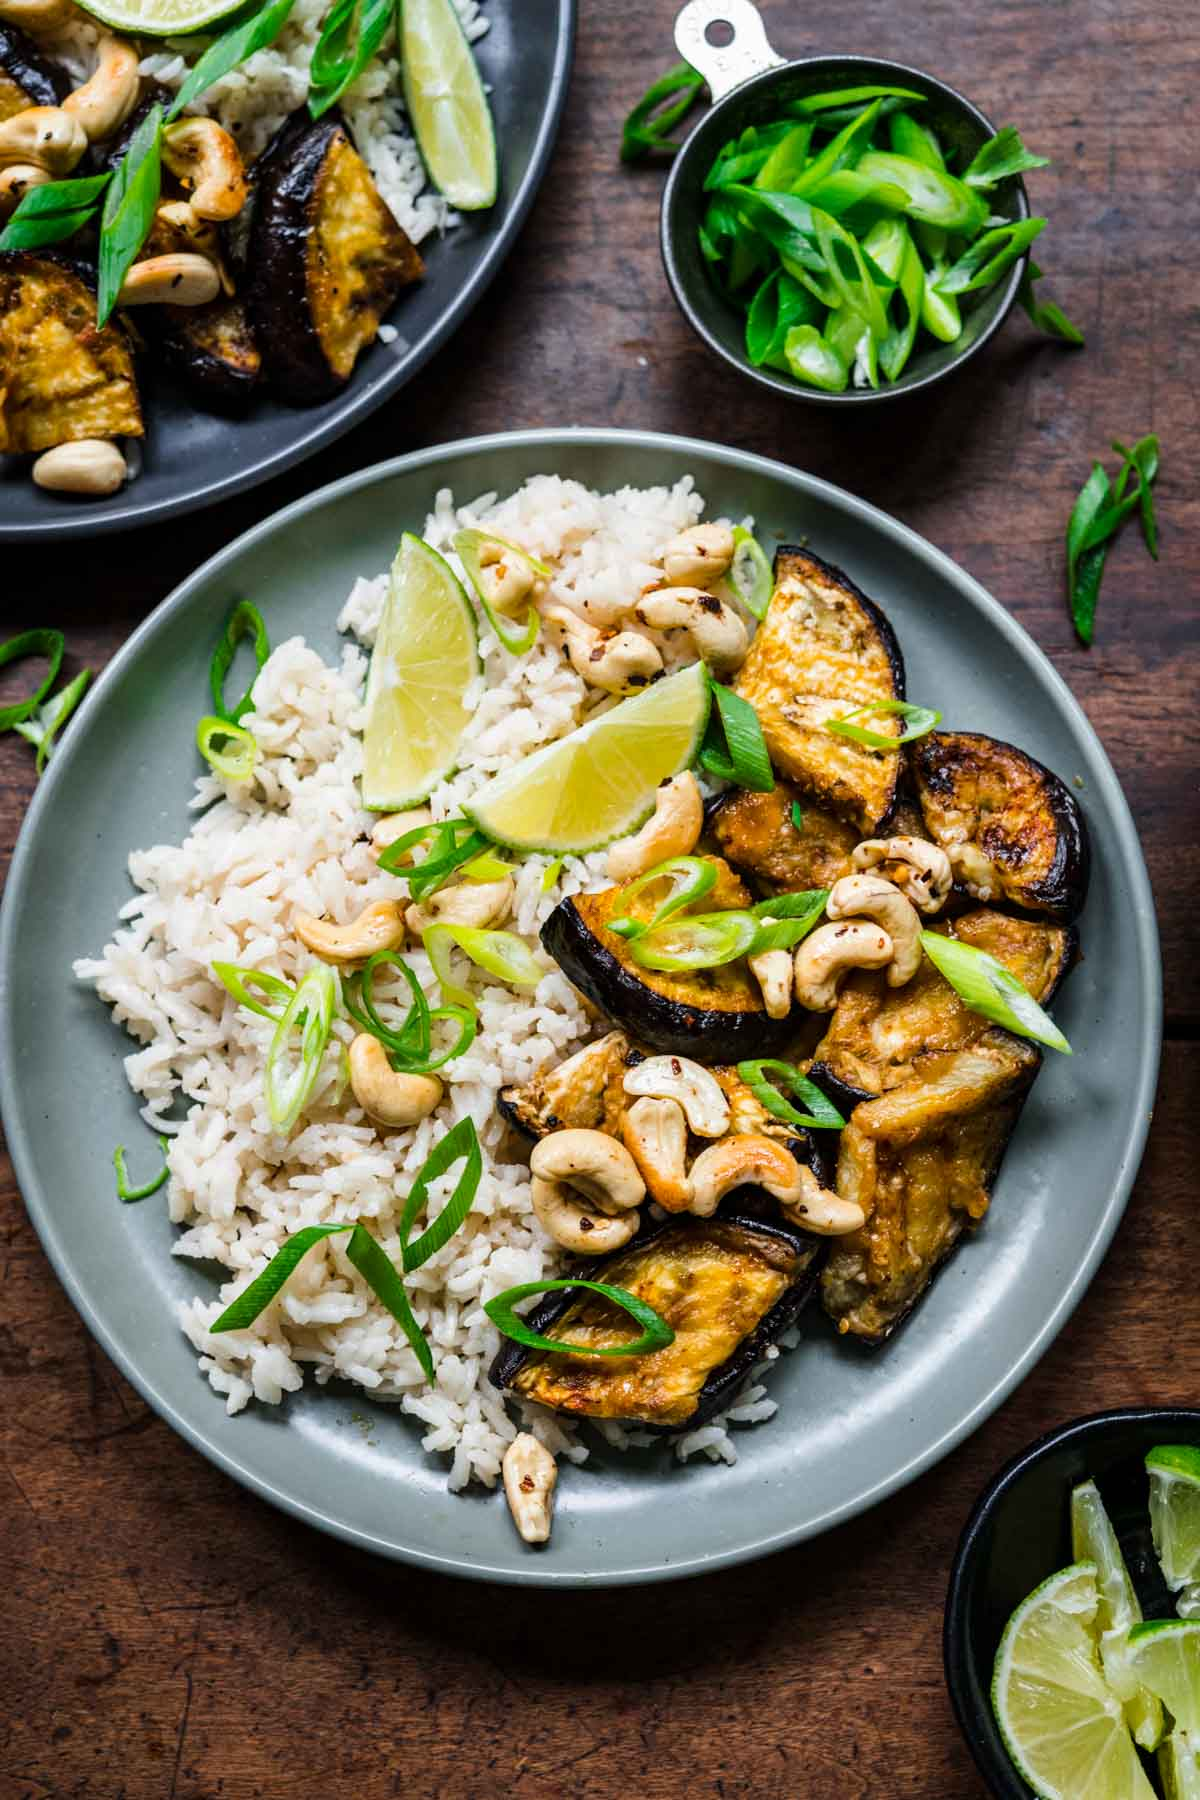 Overhead view of eggplant and rice on a plate, garnished with green onions, cashews, and lime.